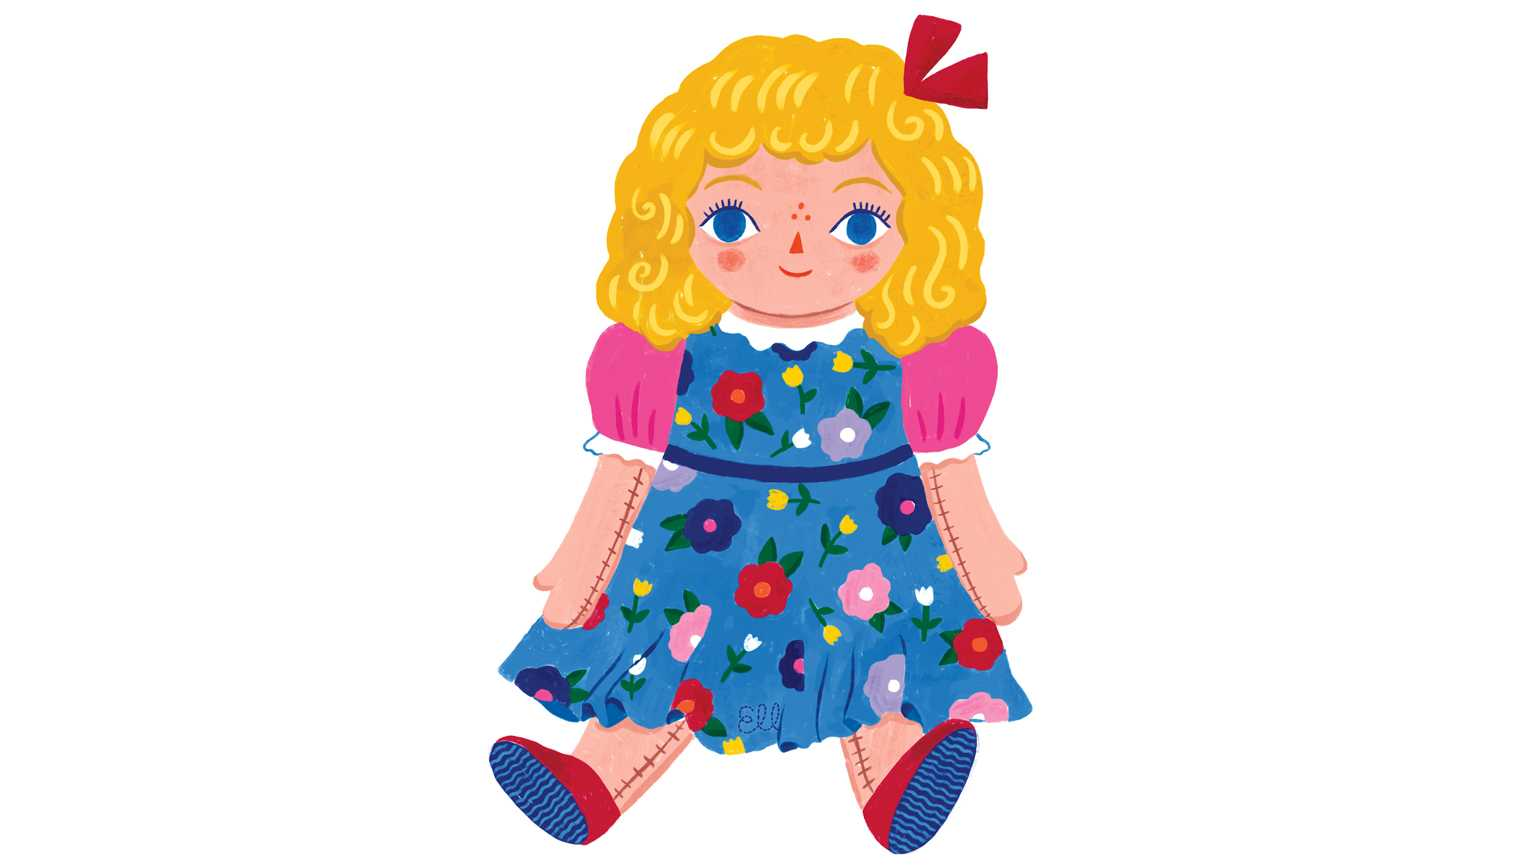 An illustration of a doll; Illustration by Sarah Walsh